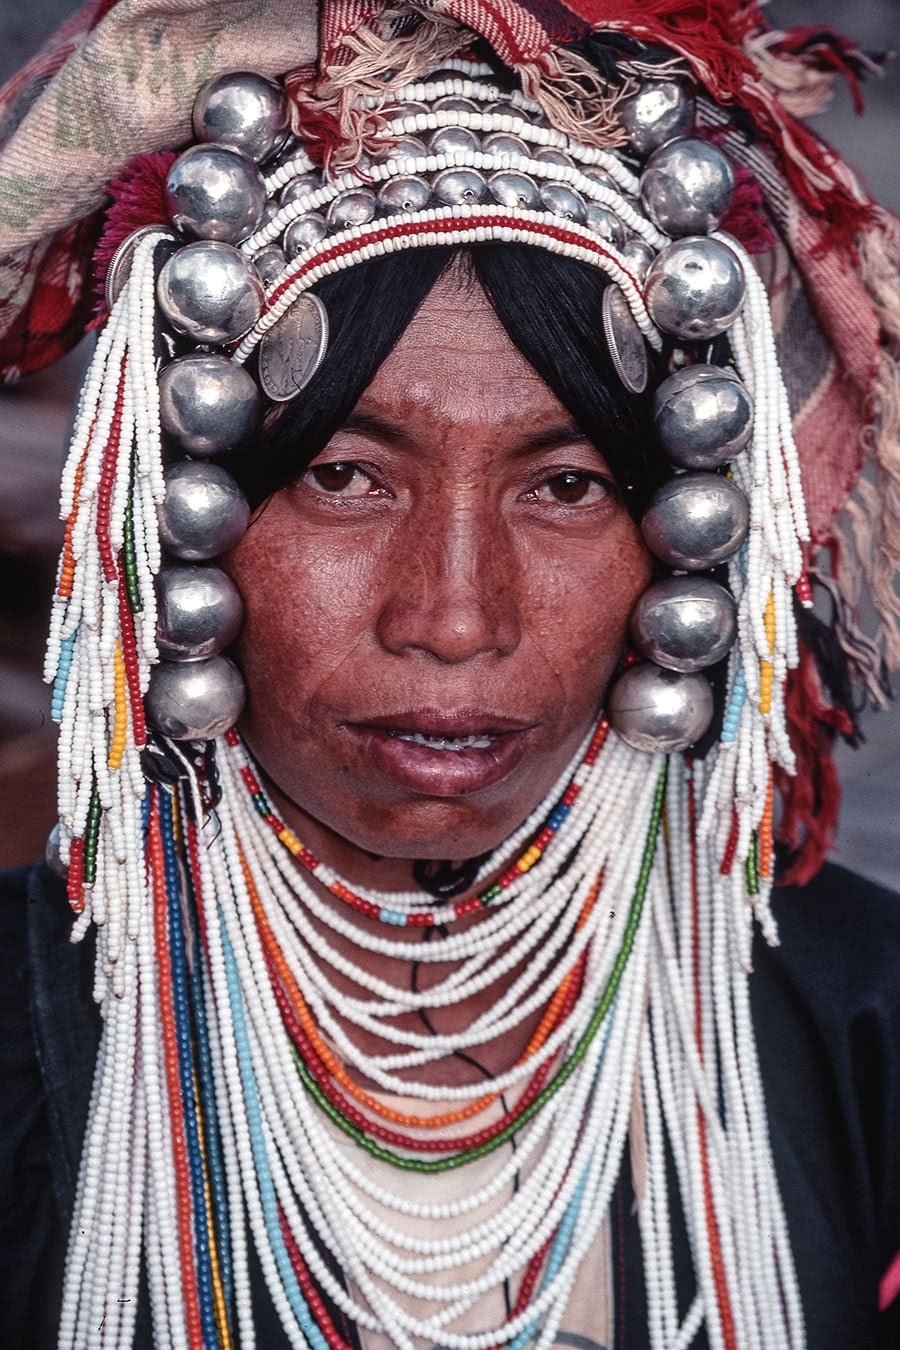 Portrait of an Akha woman from 1992 in Northern Thailand.